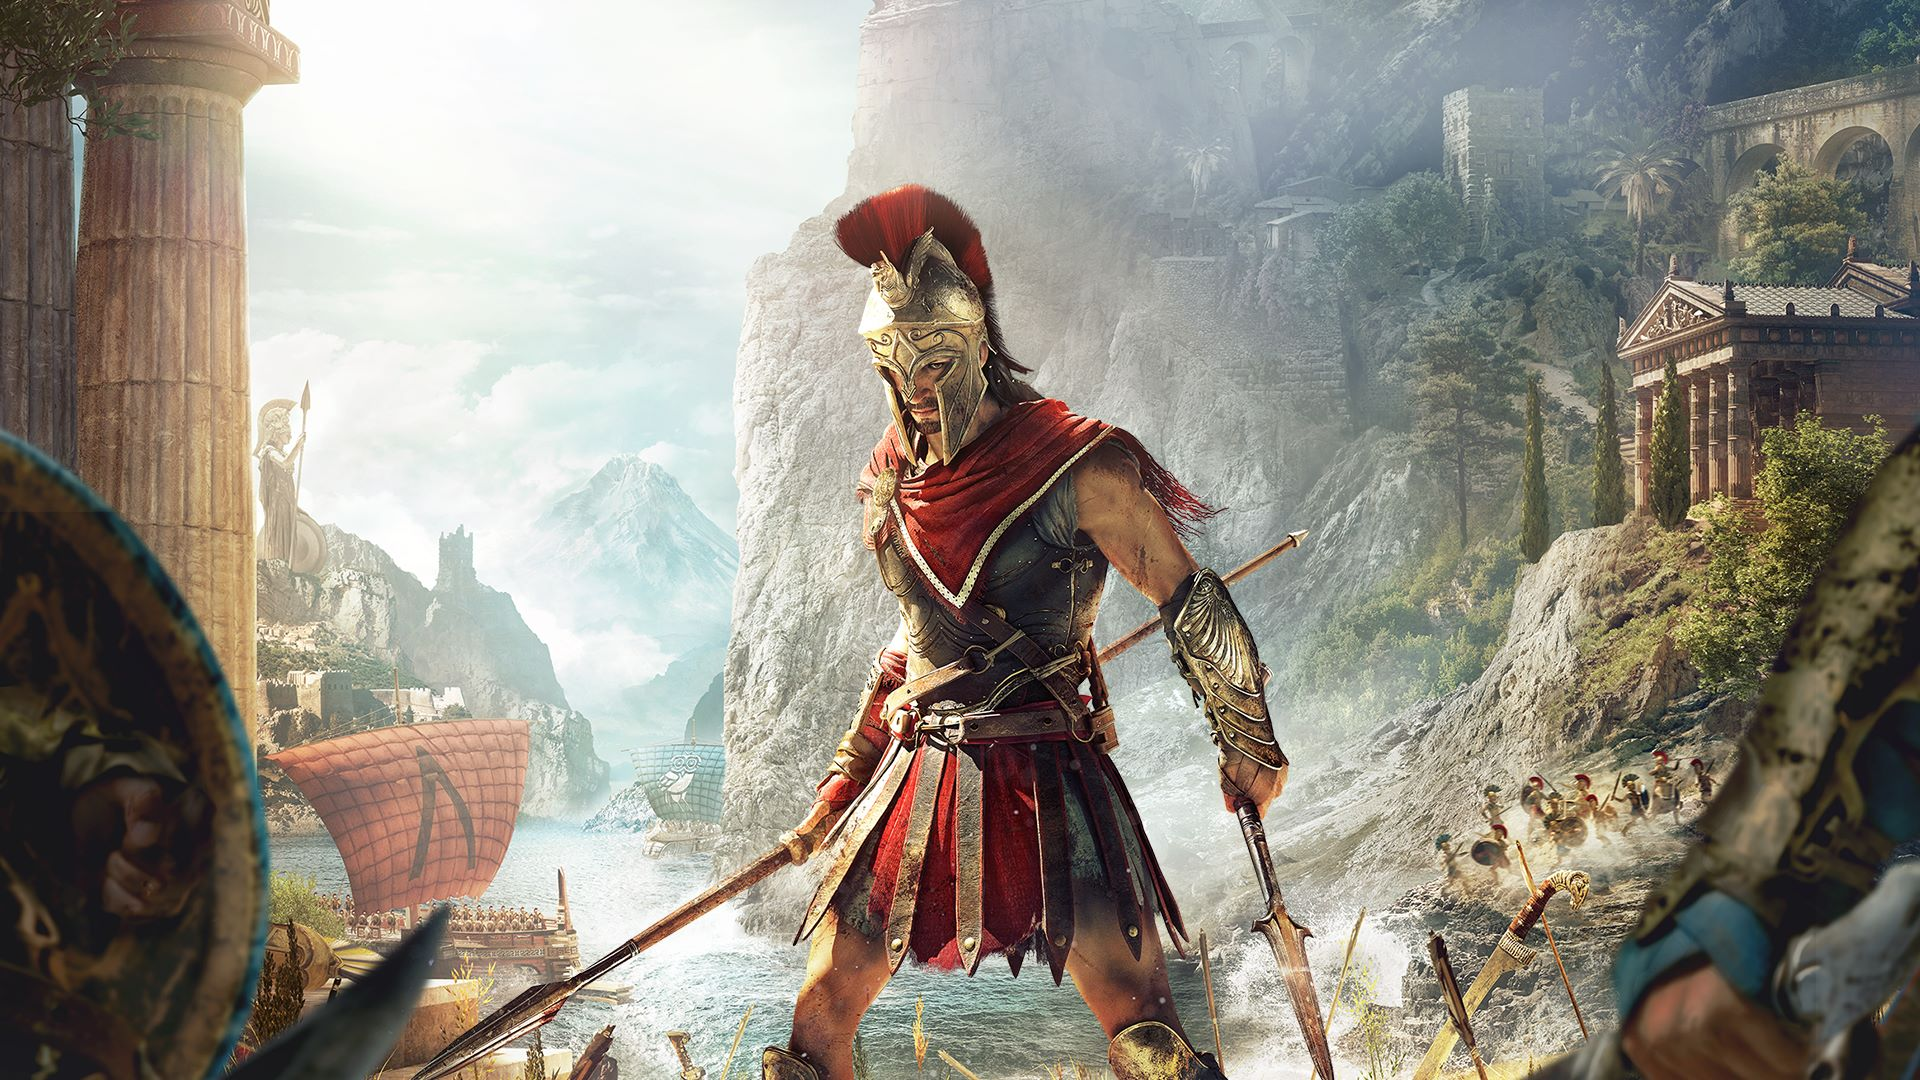 ubisoft-regala-assassins-creed-odyssey-por-probar-el-servicio-project-stream-frikigamers.com